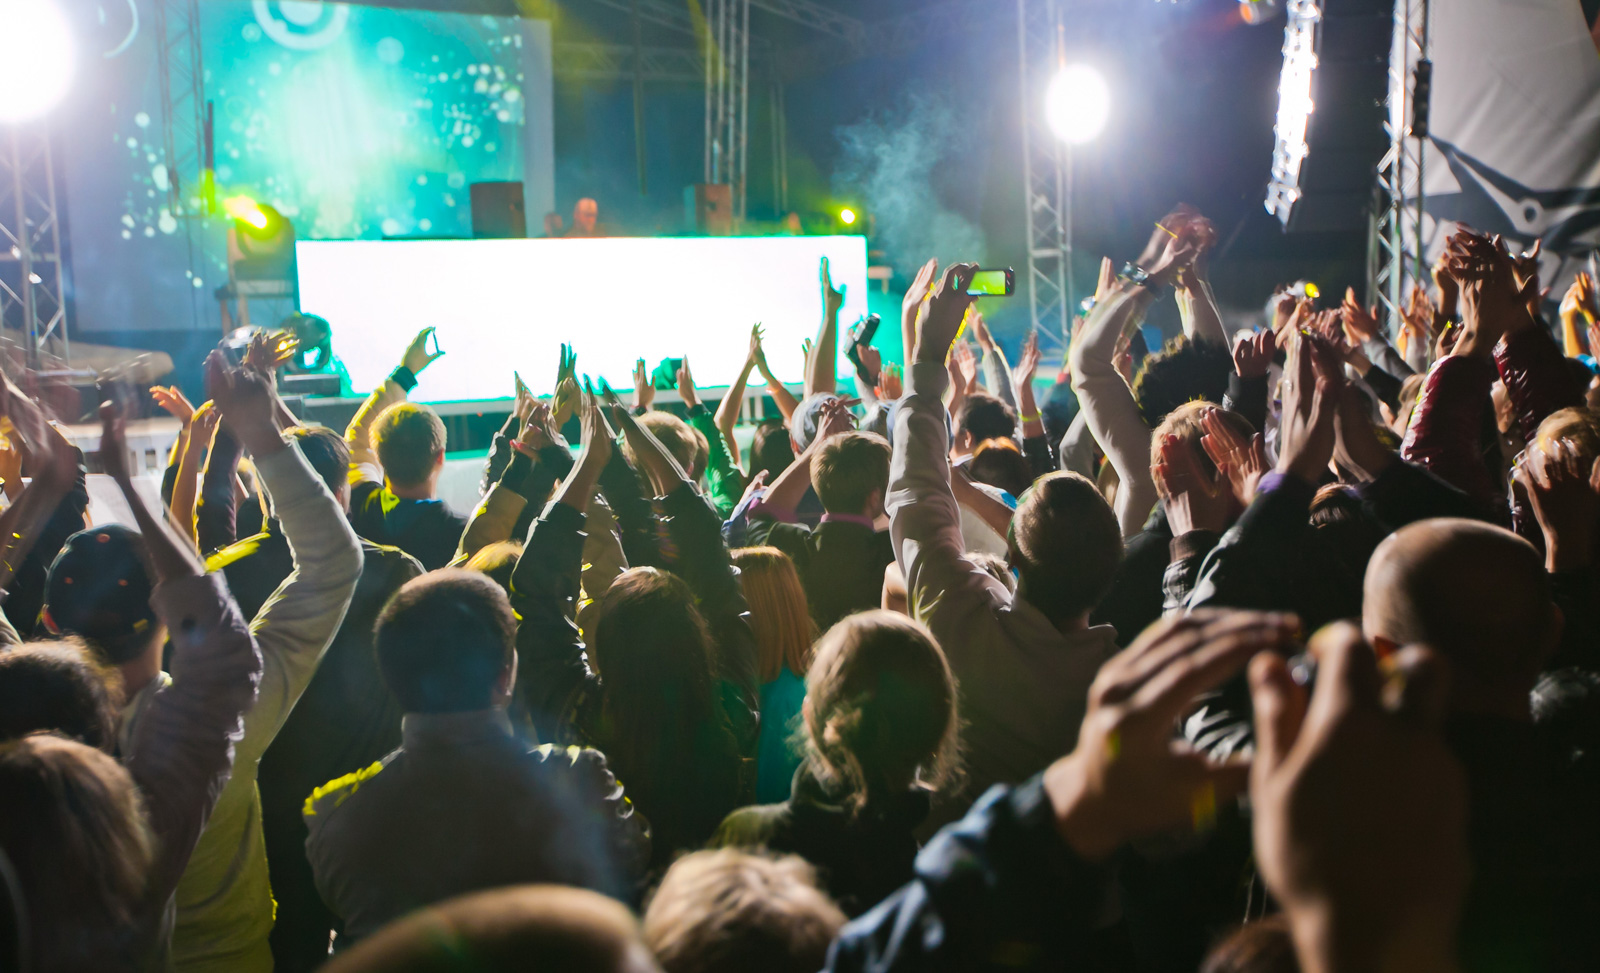 Megashow the most expensive and extensive event in the history of Omsk 25 august 2012 Oleg Borisov Omsk Moscow Russia